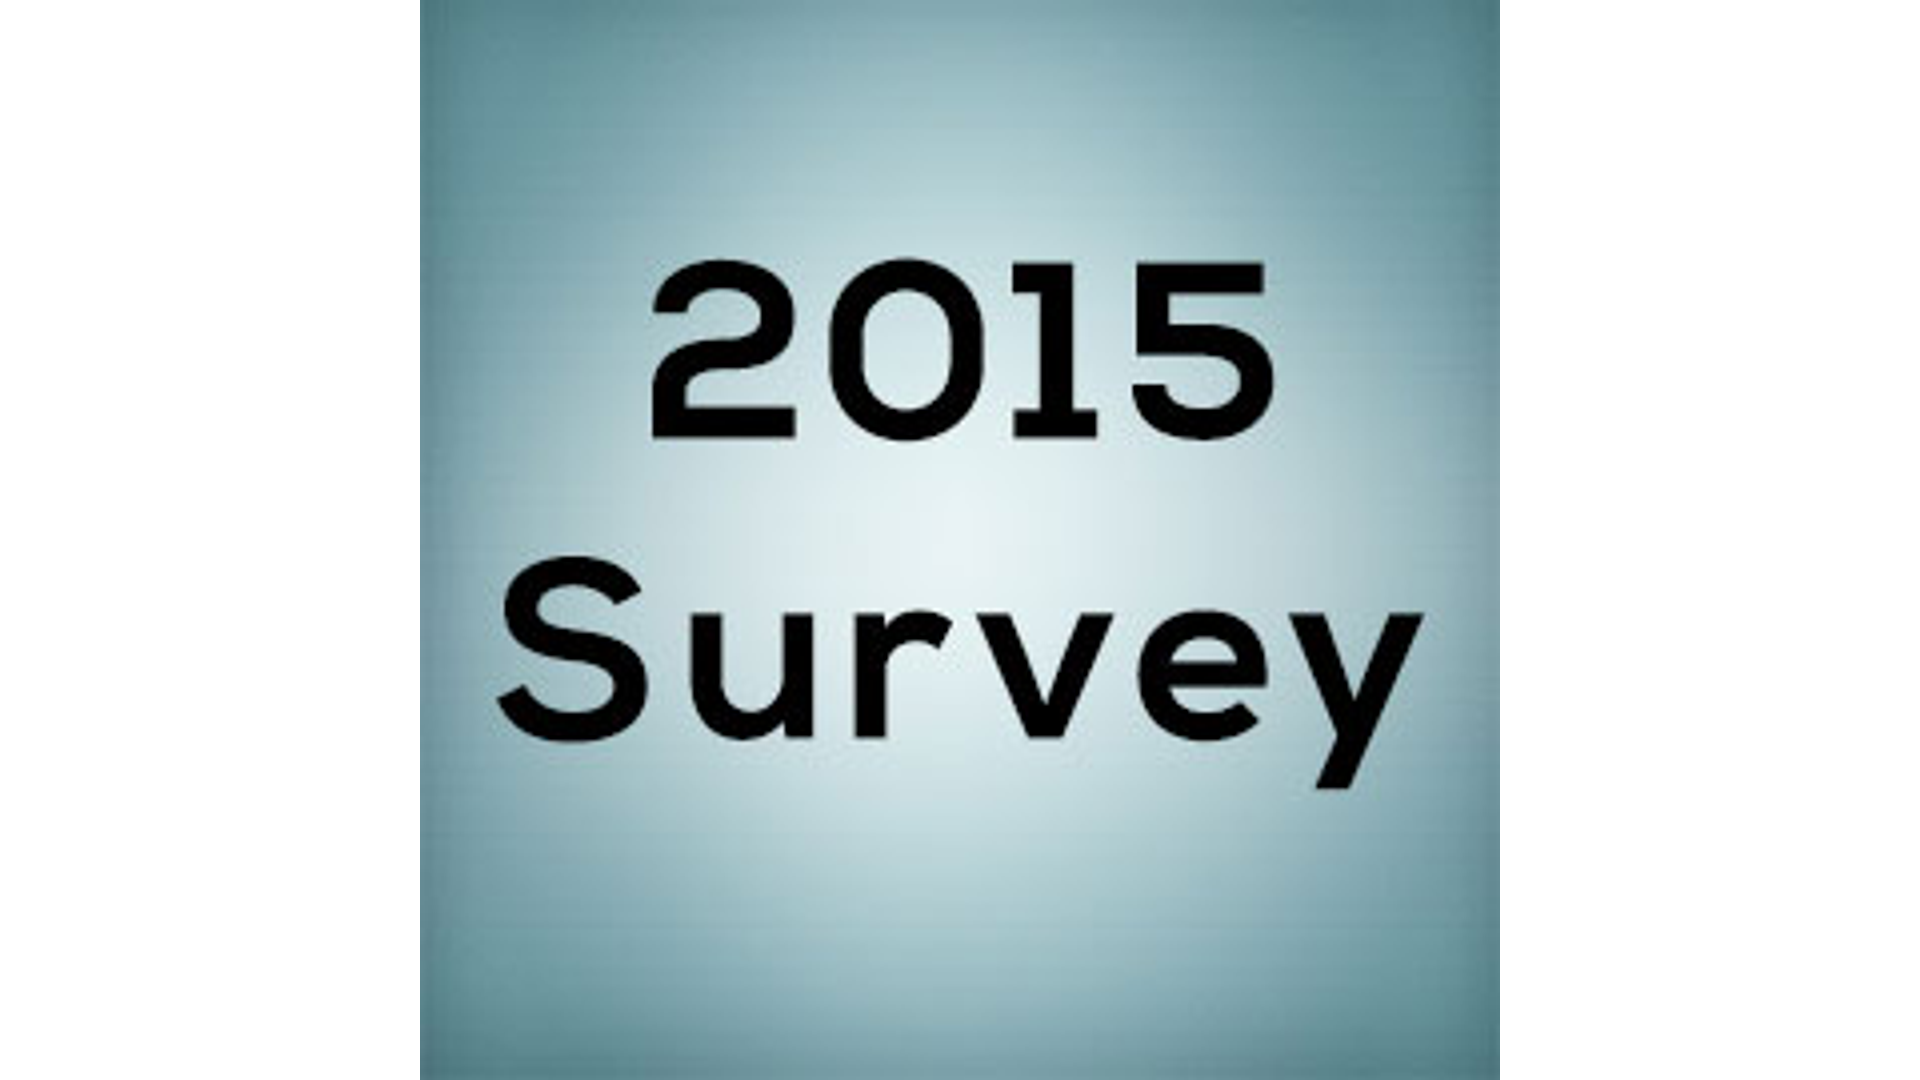 2015 Attend And Serve Survey Hero Image